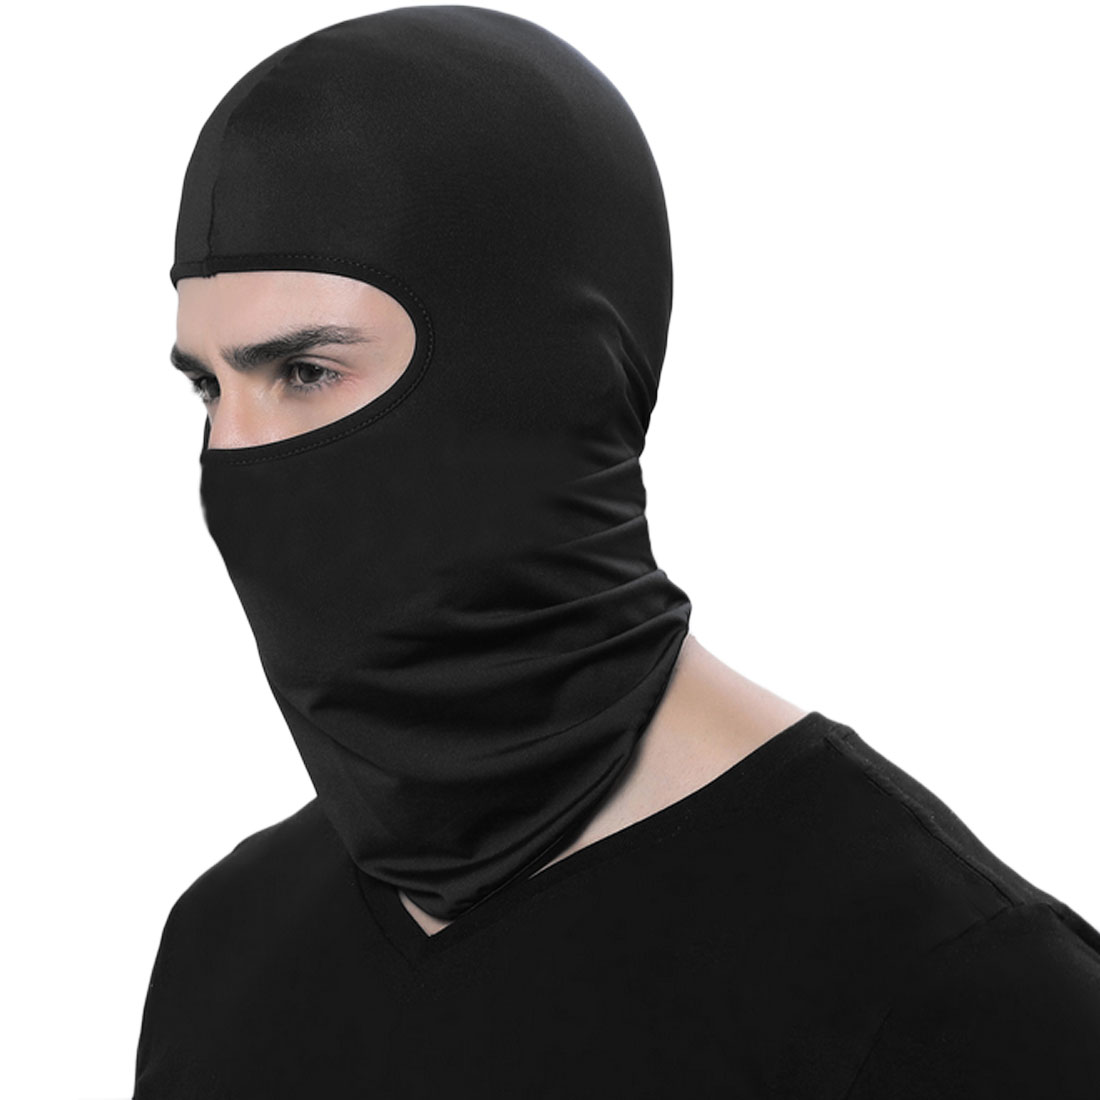 Fashion Cool Motorcycle Face Mask Cycling Ski Neck Protecting Outdoor Balaclava Full Face Mask Ultra Thin Breathable Windproof